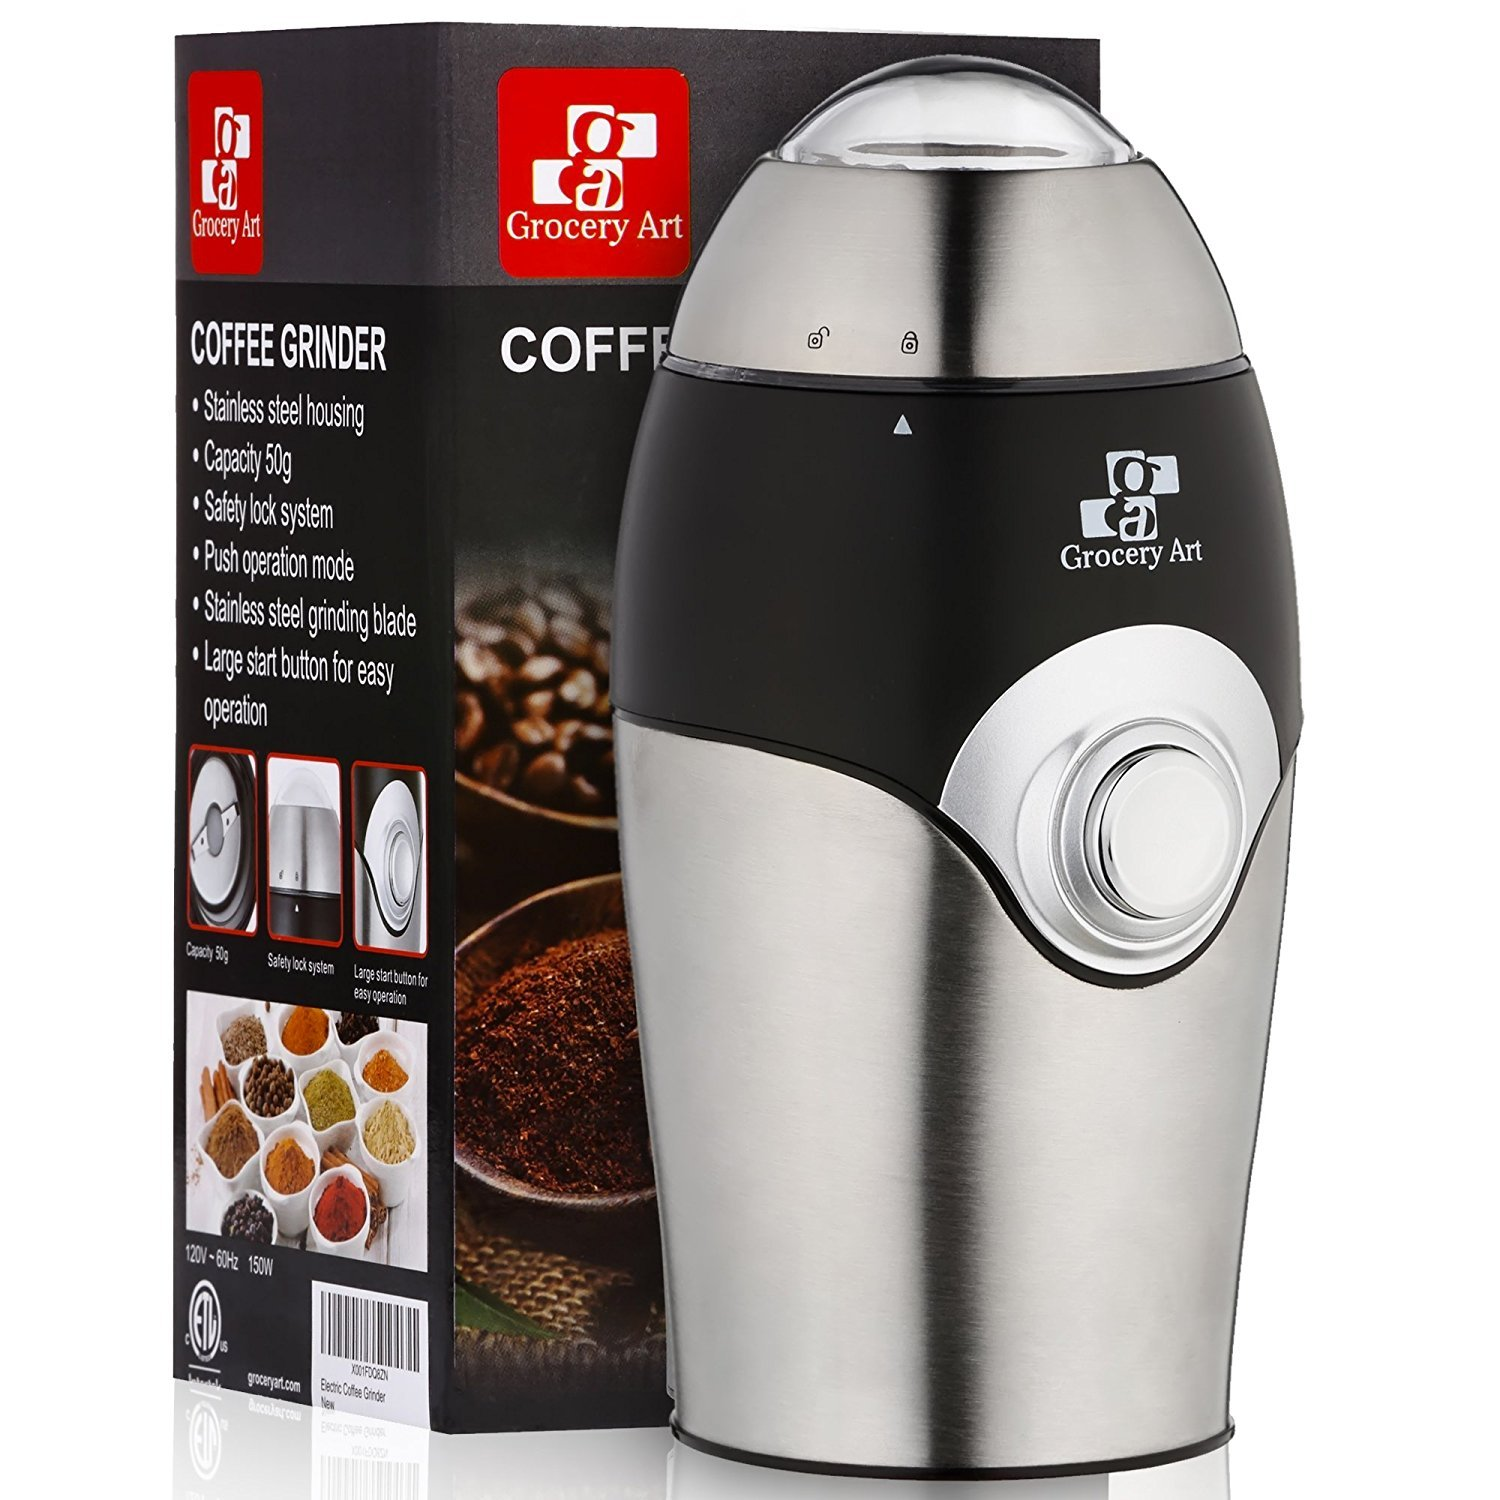 Electric Coffee Grinder Blade Mill - Small & Compact Simple Touch Automatic Grinding Tool for Whole Beans, Herbs, Pepper, Salt & Nuts - Safe No-Mess Counter Top Appliance - Great Coffee Gift Idea